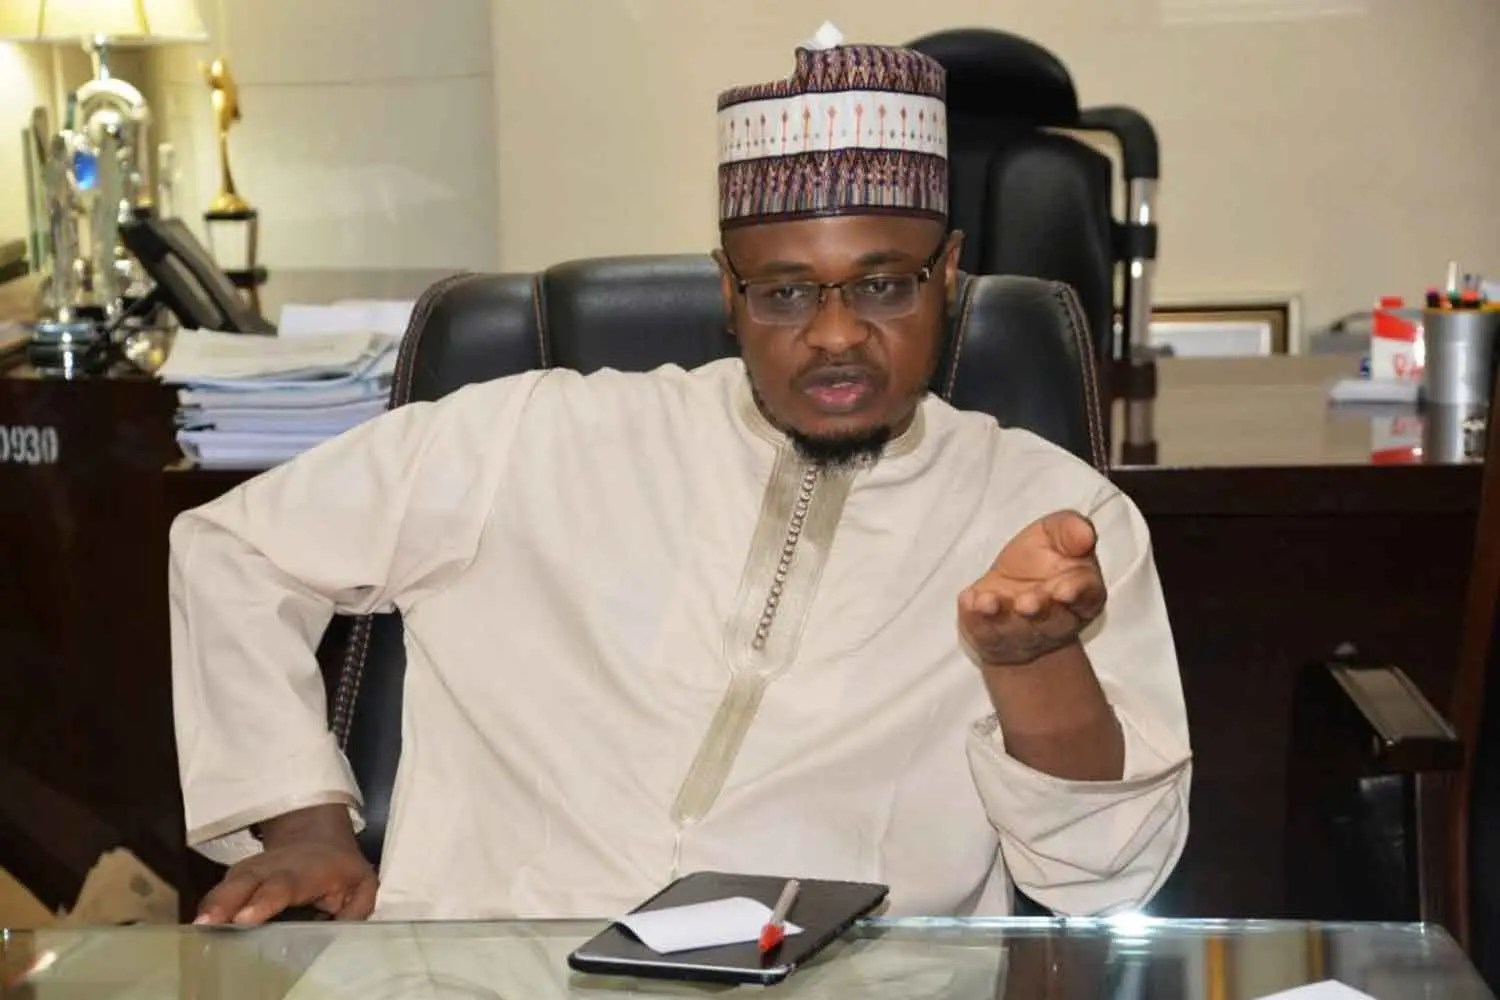 Image result for Stop Harassing Young Men With Laptops: Minister Of Communications Warns Security Agencies